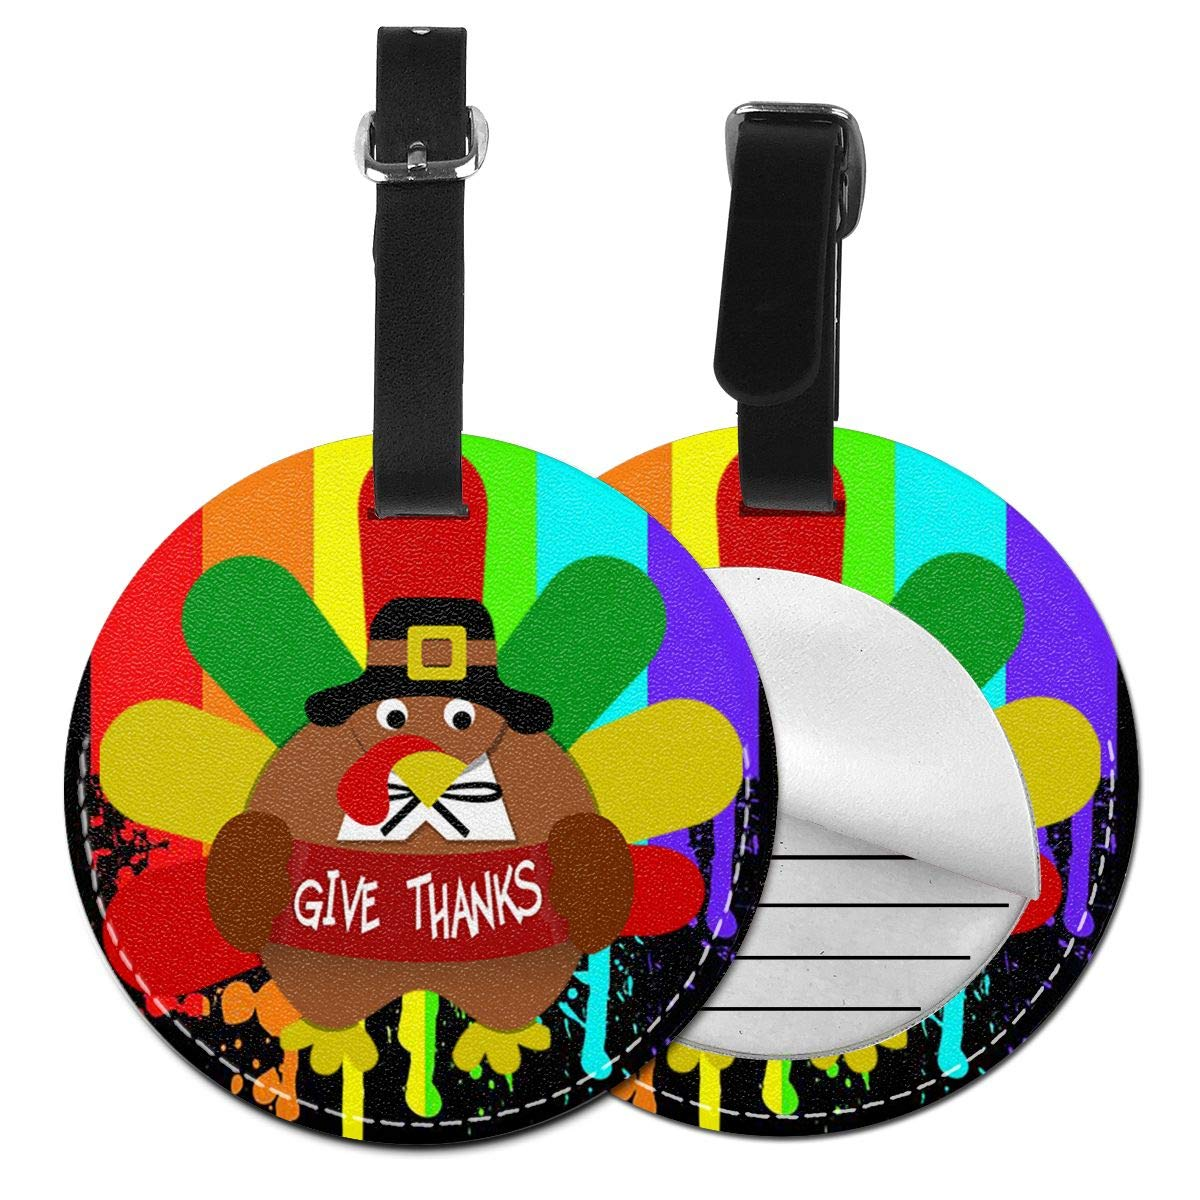 Free-2 Give Thanks Turkey Thanksgiving Luggage Tag 3D Print Leather Travel Bag ID Card